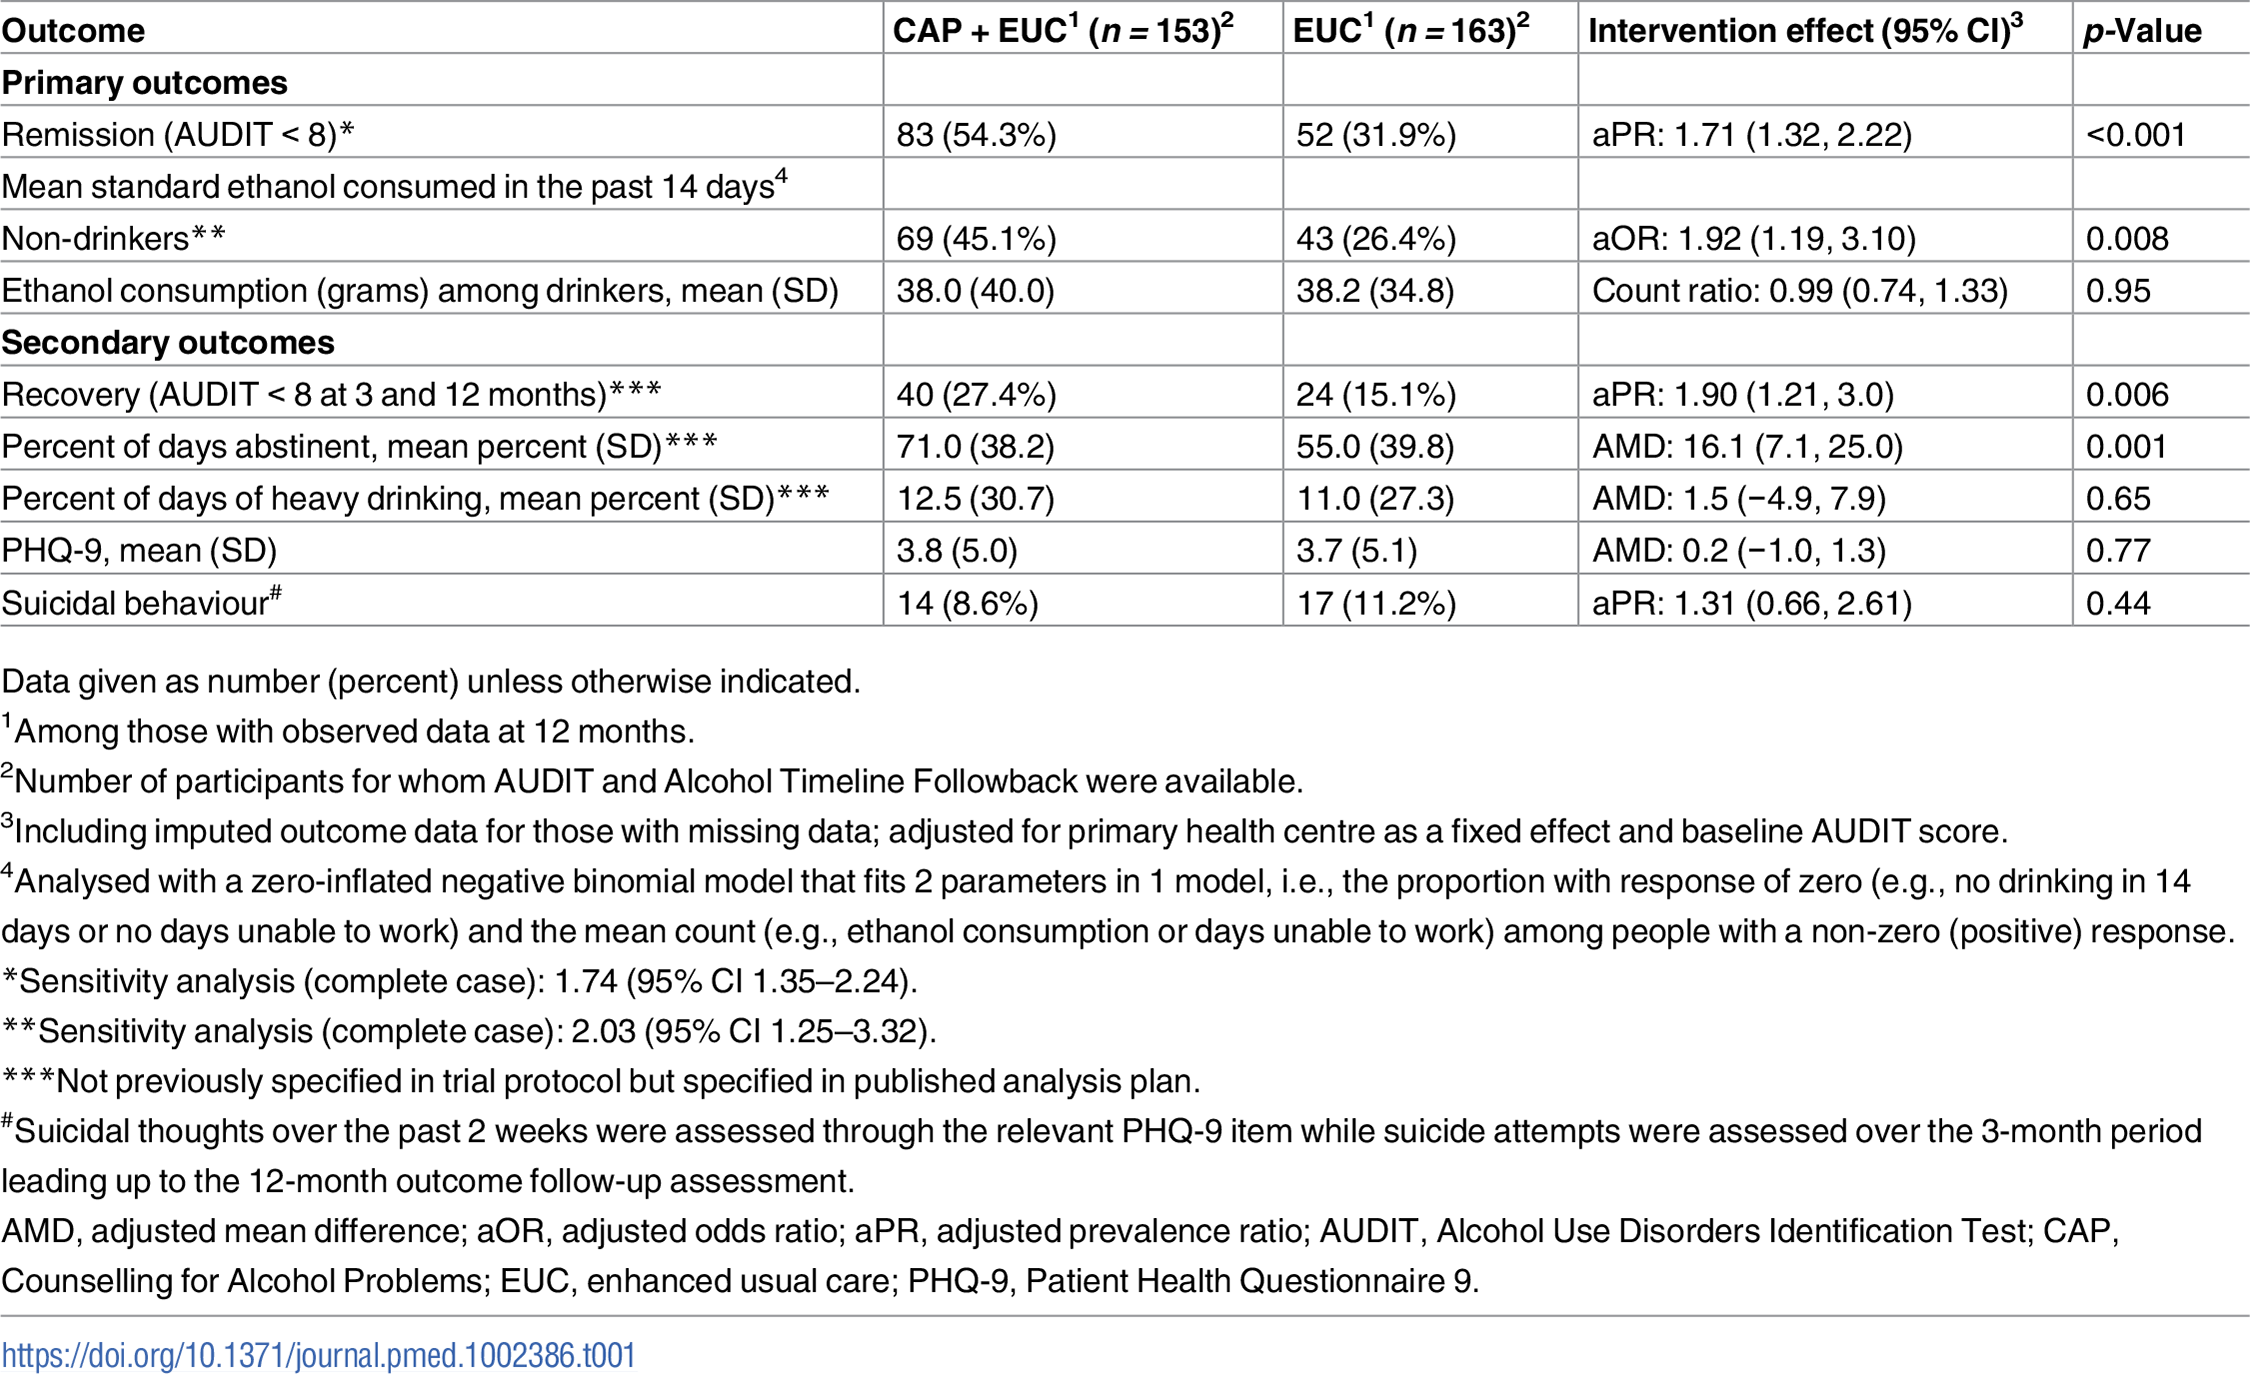 Effects of CAP plus EUC compared with EUC alone on primary and secondary clinical outcomes at 12 months.